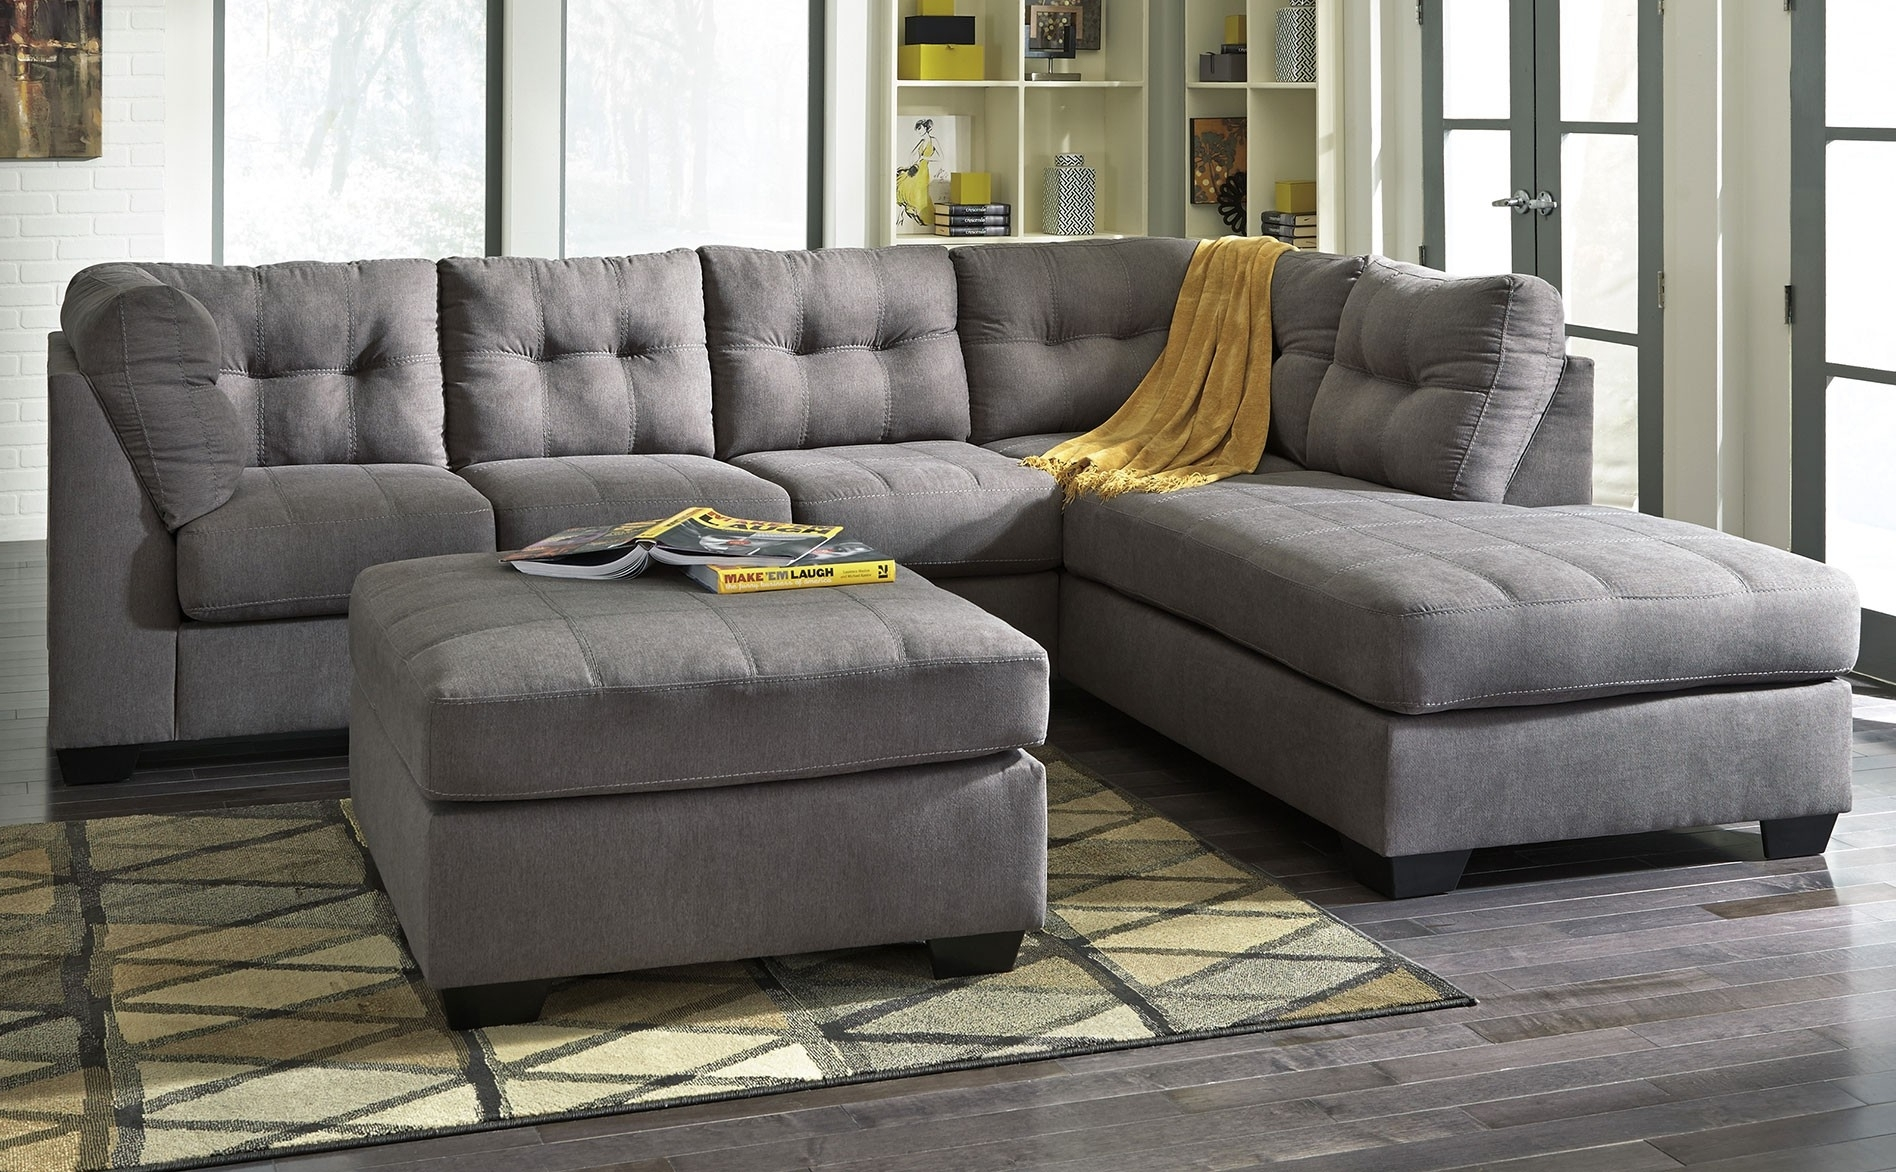 2018 Sectional Couch With Recliner Ikea Couch Bed Large Leather Inside Sofa Sectionals With Chaise (View 15 of 15)